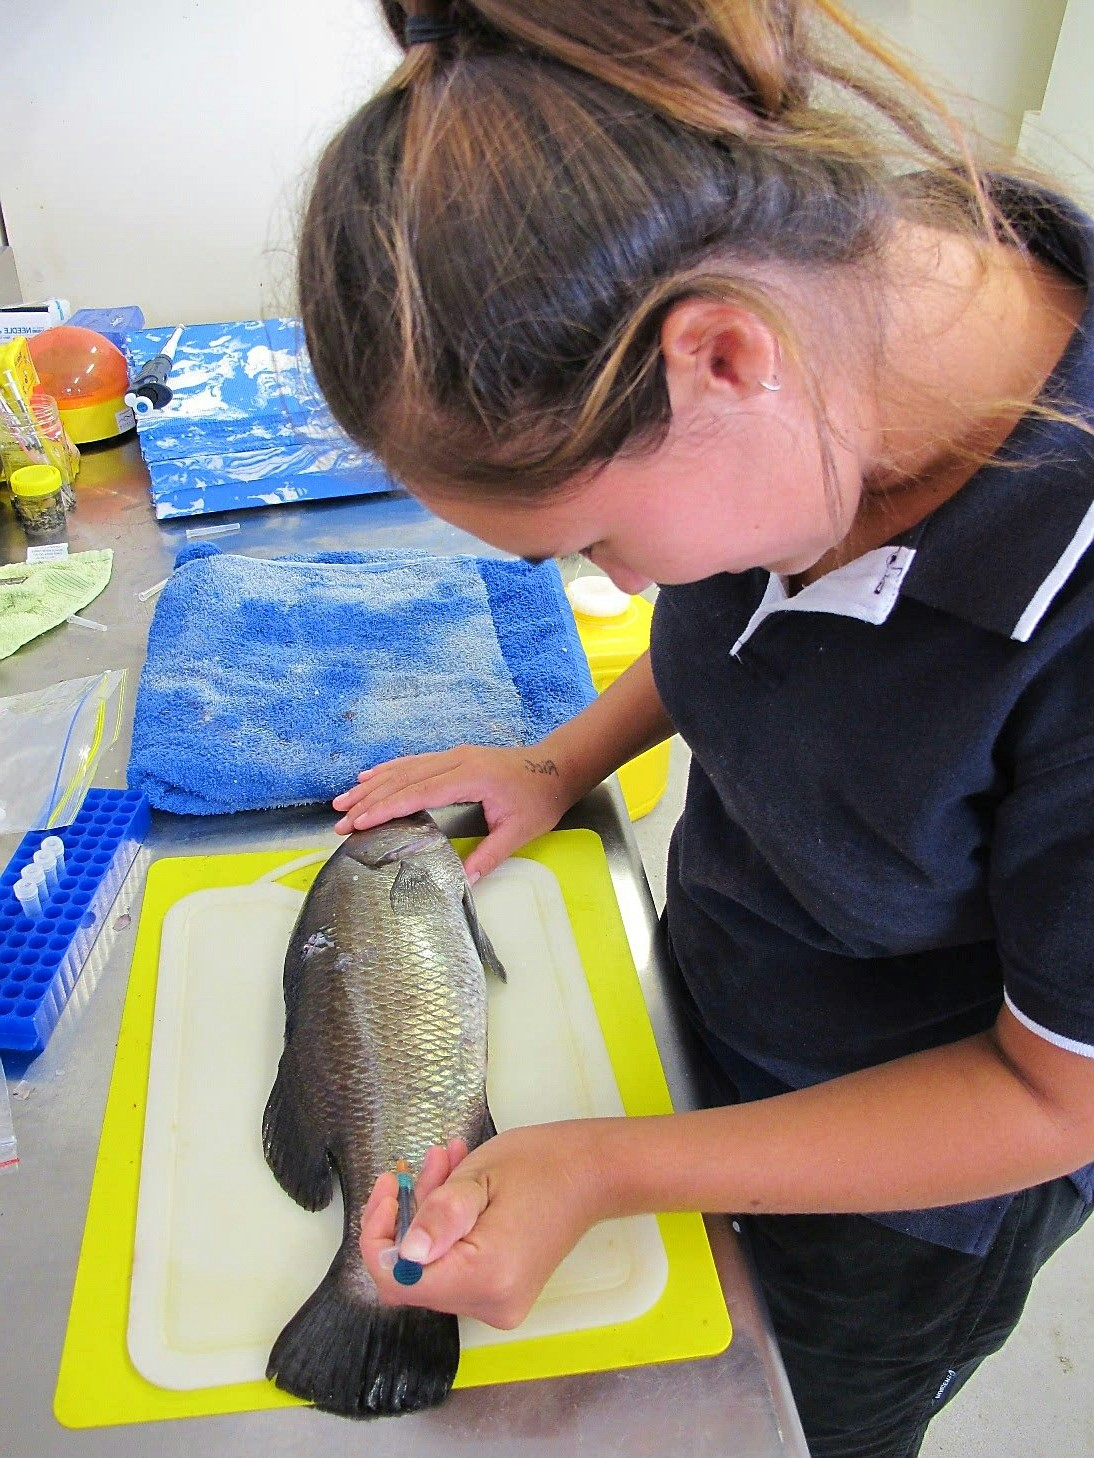 A girl working in an aquaculture facility